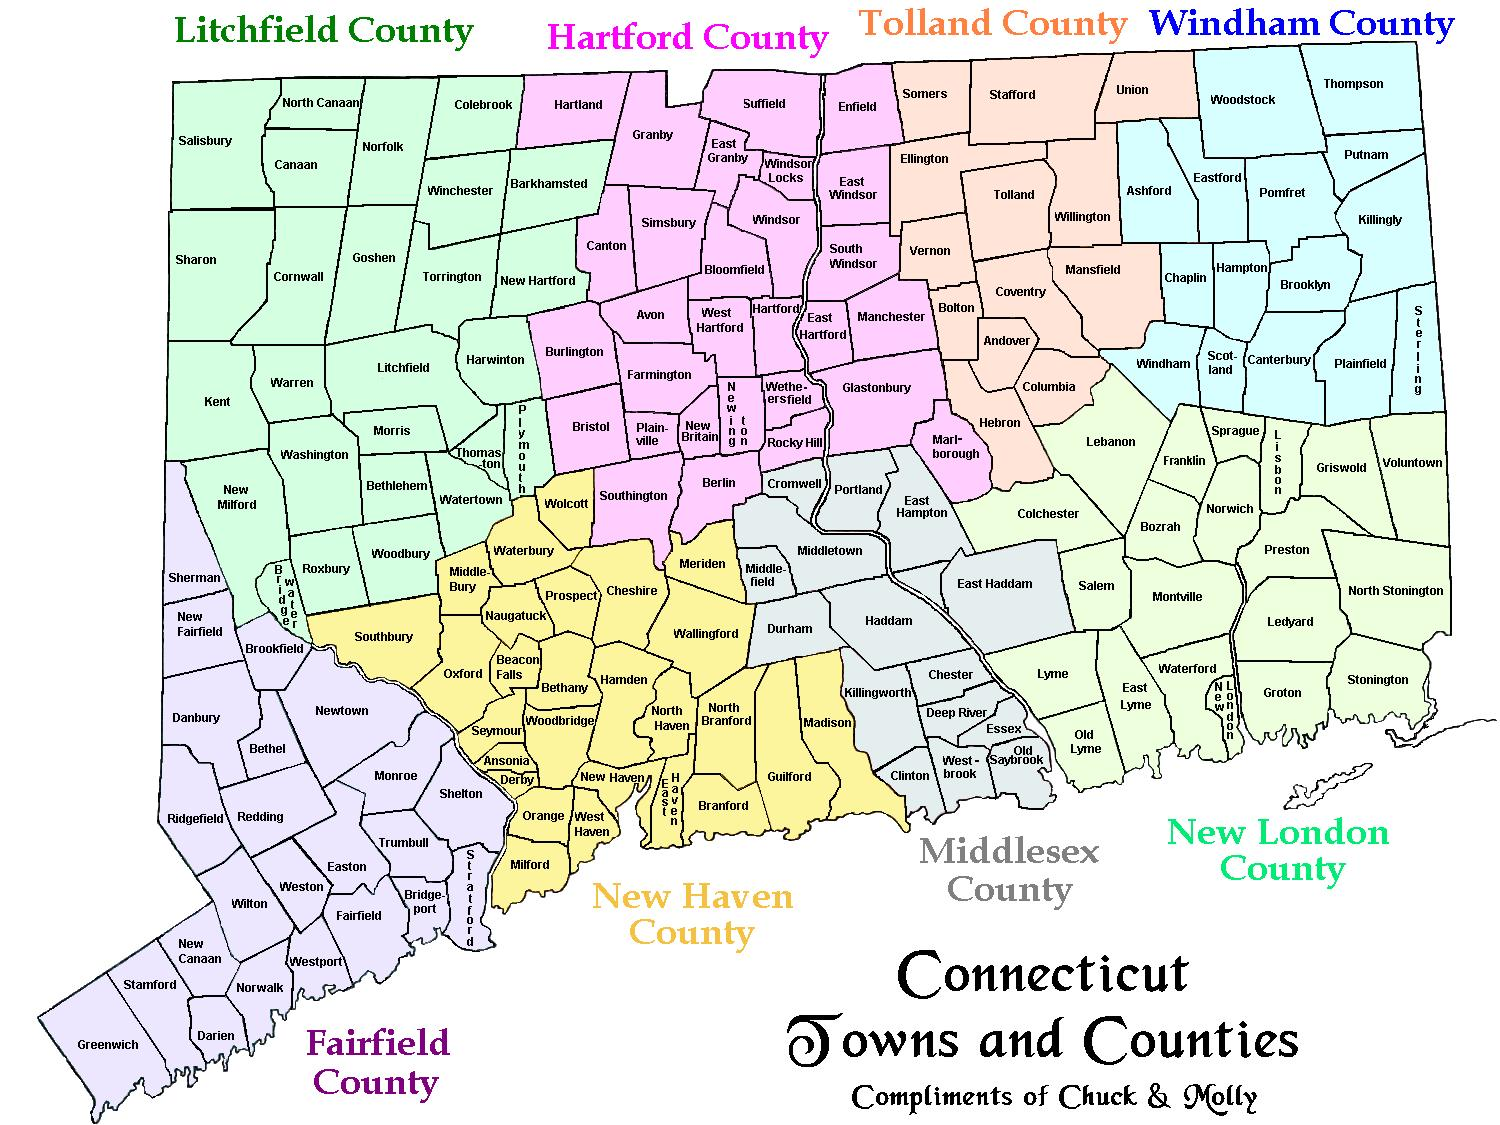 Connecticut State Maps USA Maps Of Connecticut CT Ivoryton - Usa connecticut map